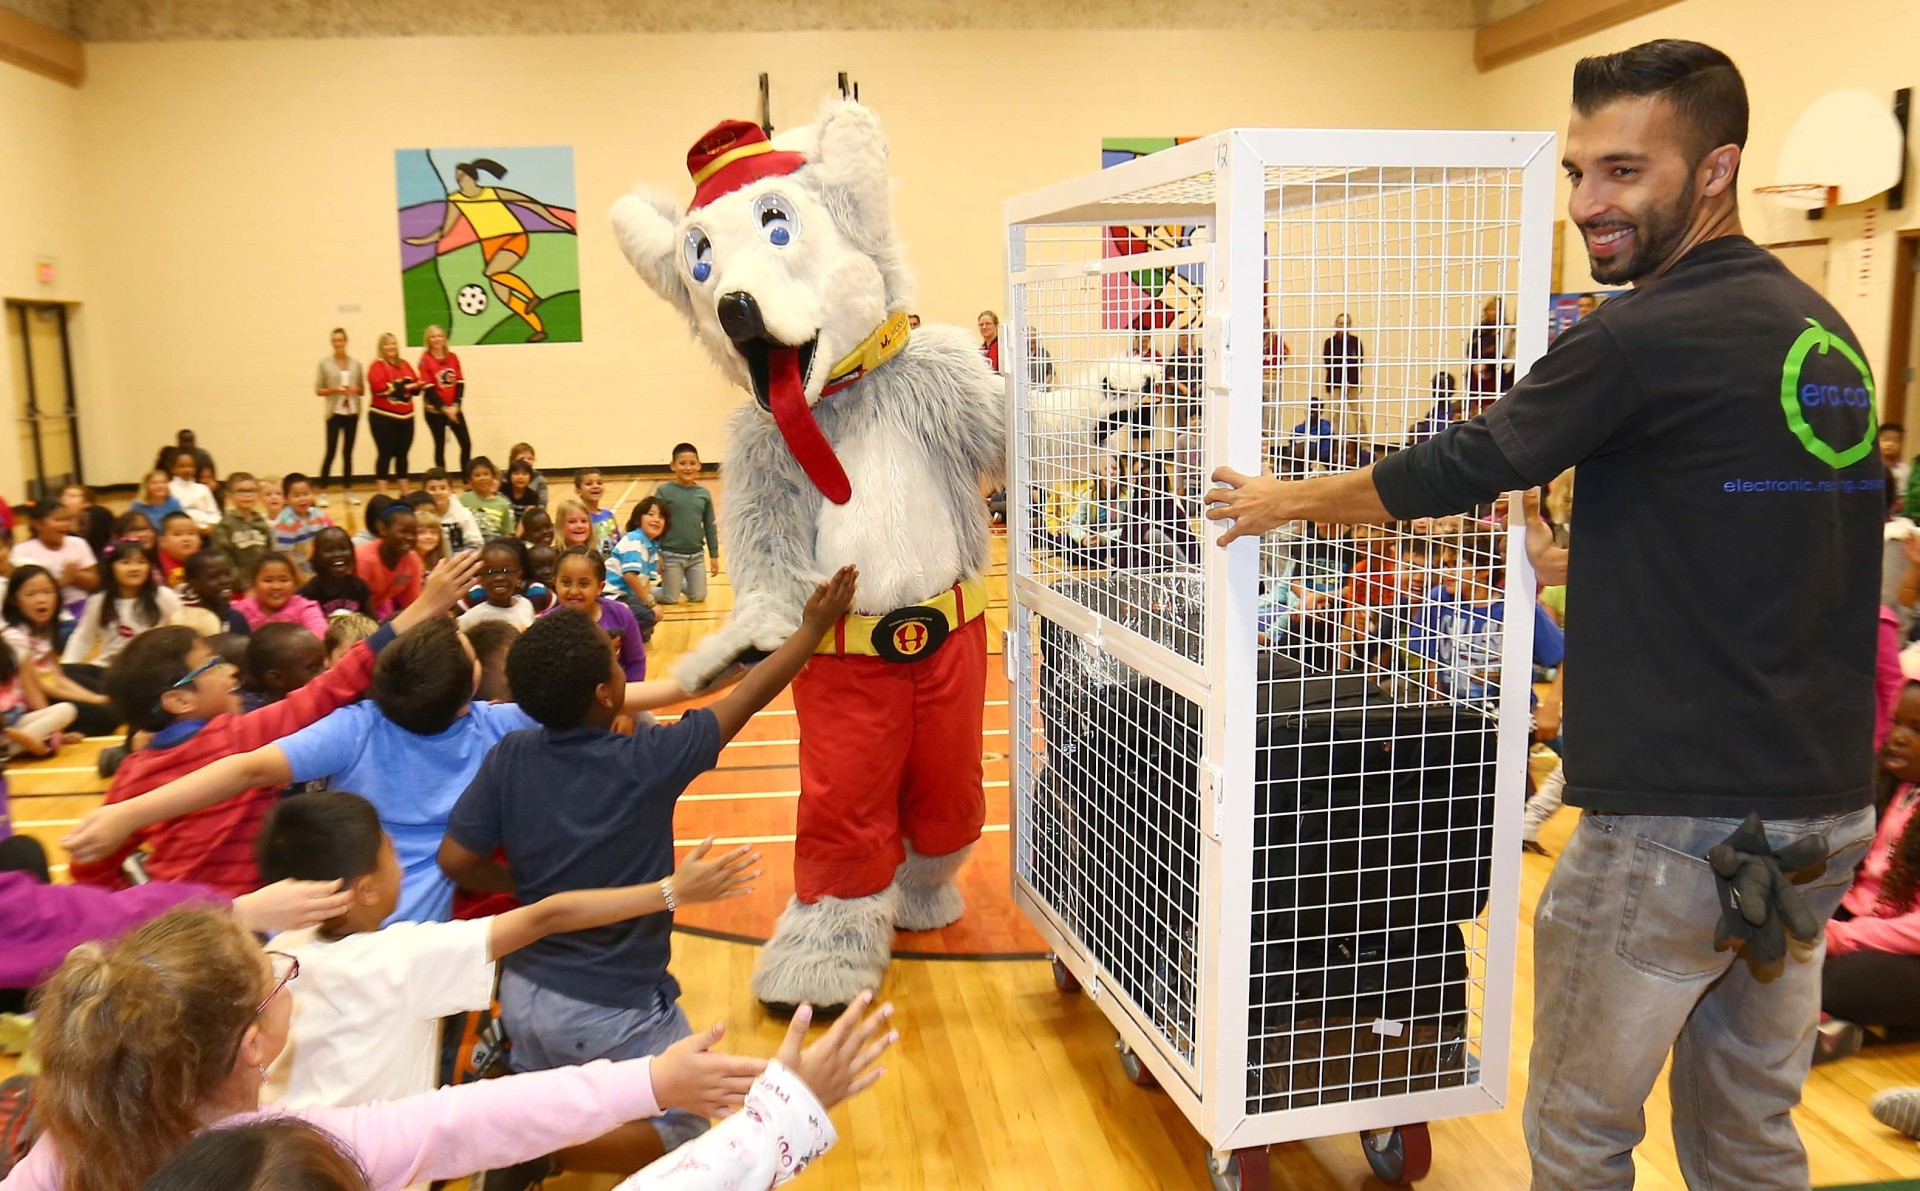 Students at St. Peter School give out a cheer as they had a special visit by The Calgary Flames' mascot, Harvey the Hound thanks to The Electronic Recycling Association (ERA) who donated 20 refurbished laptops which where presented to deserving students in Calgary on Wednesday June 17, 2015.